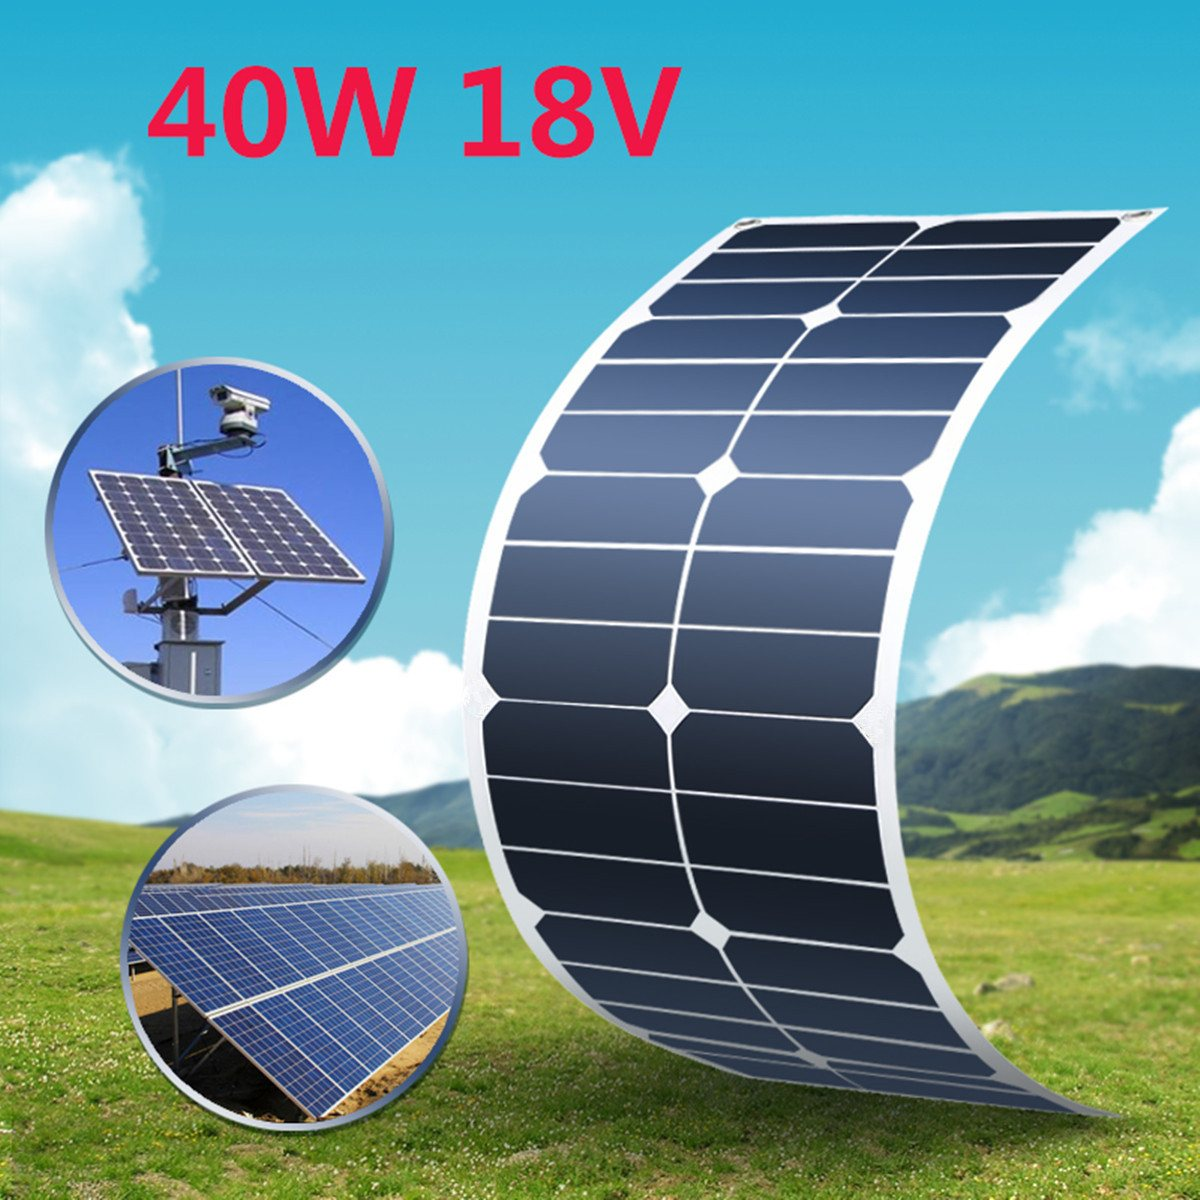 KINCO 40W/18V Semi-Flexible Solar Panel Monocrystalline Silicon Solar System Power Supply For Car Charger +MC4 Connector Cable 50w 12v semi flexible monocrystalline silicon solar panel solar battery power generater for battery rv car boat aircraft tourism